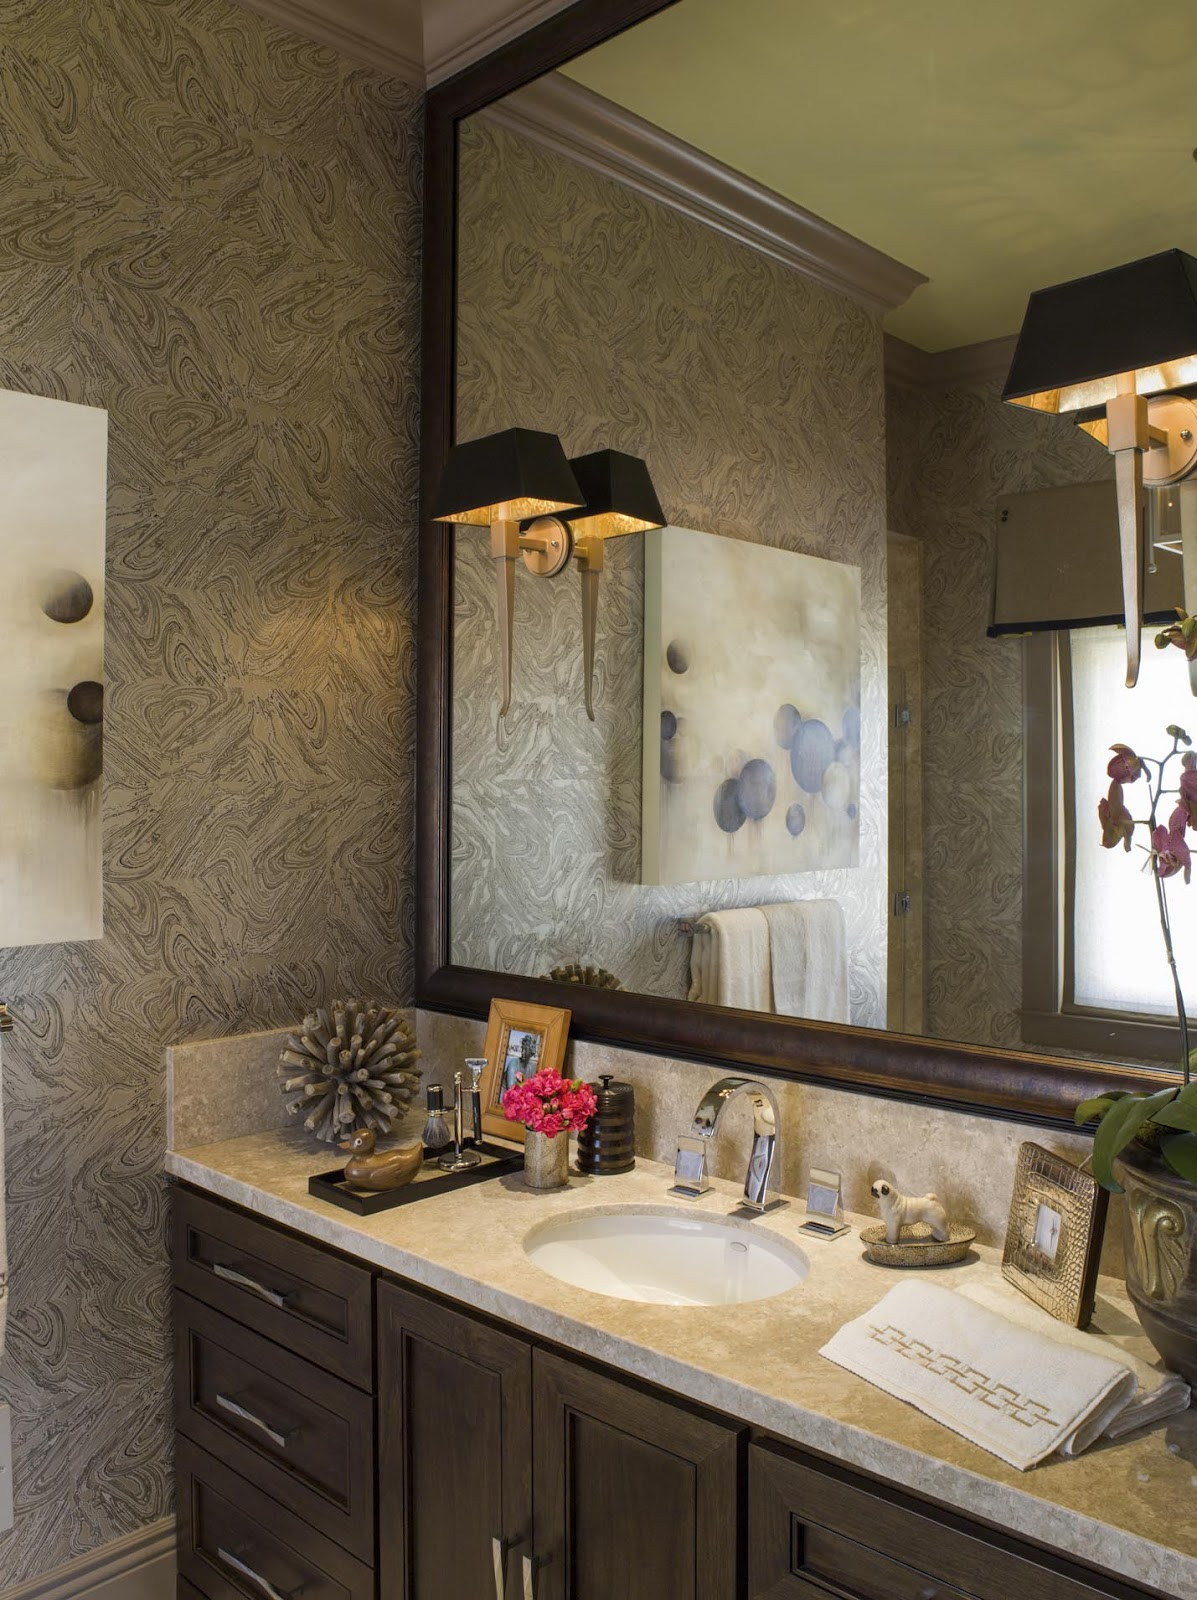 Bathroom wallpaper ideas bathroom wallpaper designs for Bathroom designs photos ideas